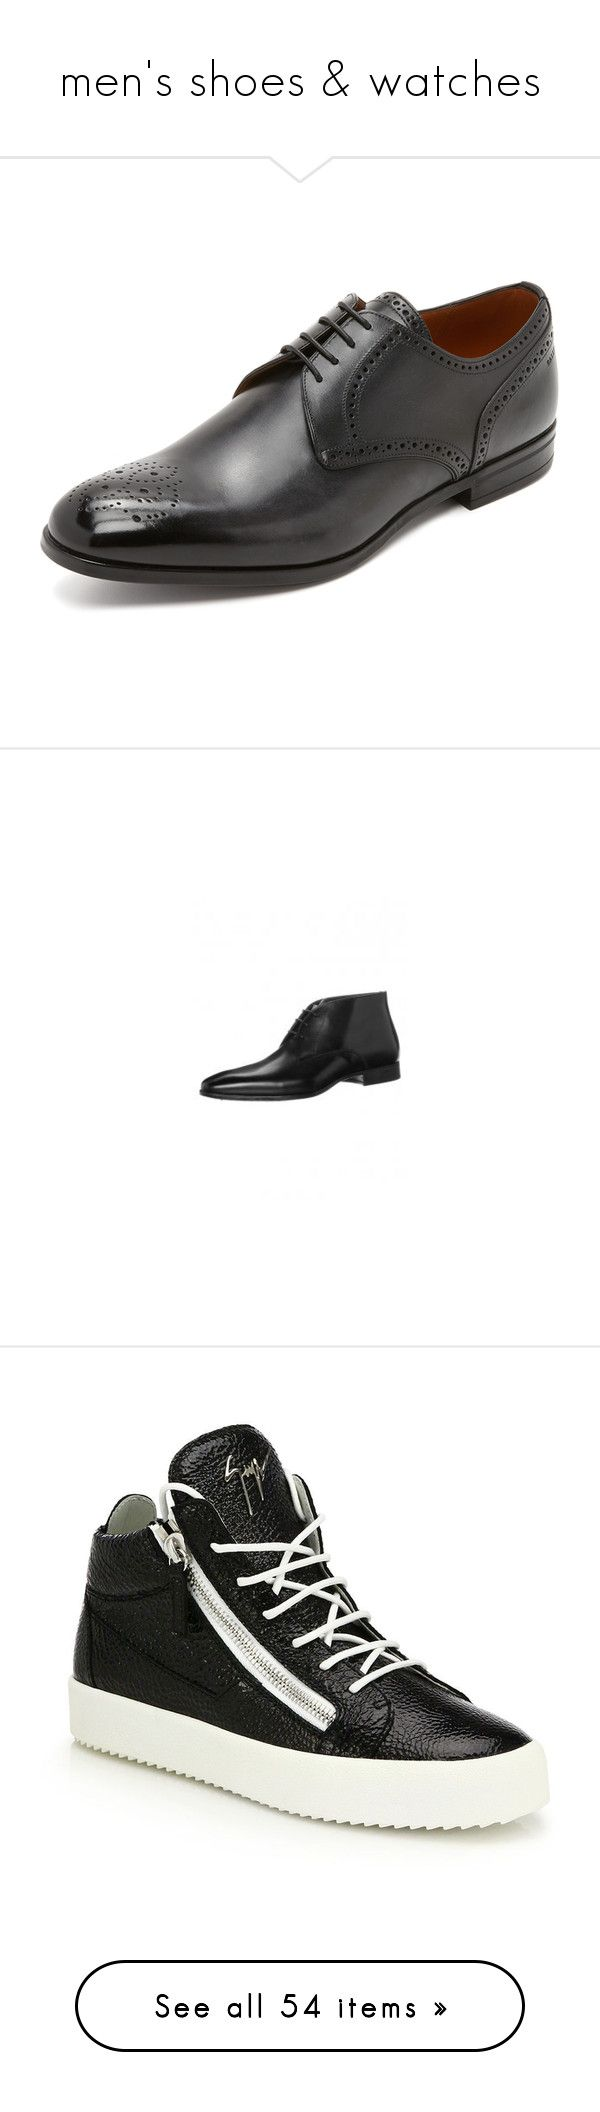 """""""men's shoes & watches"""" by evenaka ❤ liked on Polyvore featuring men's fashion, men's shoes, men's dress shoes, black, mens derby shoes, bally mens shoes, mens black dress shoes, mens black leather shoes, mens cap toe dress shoes and mens brogue shoes"""